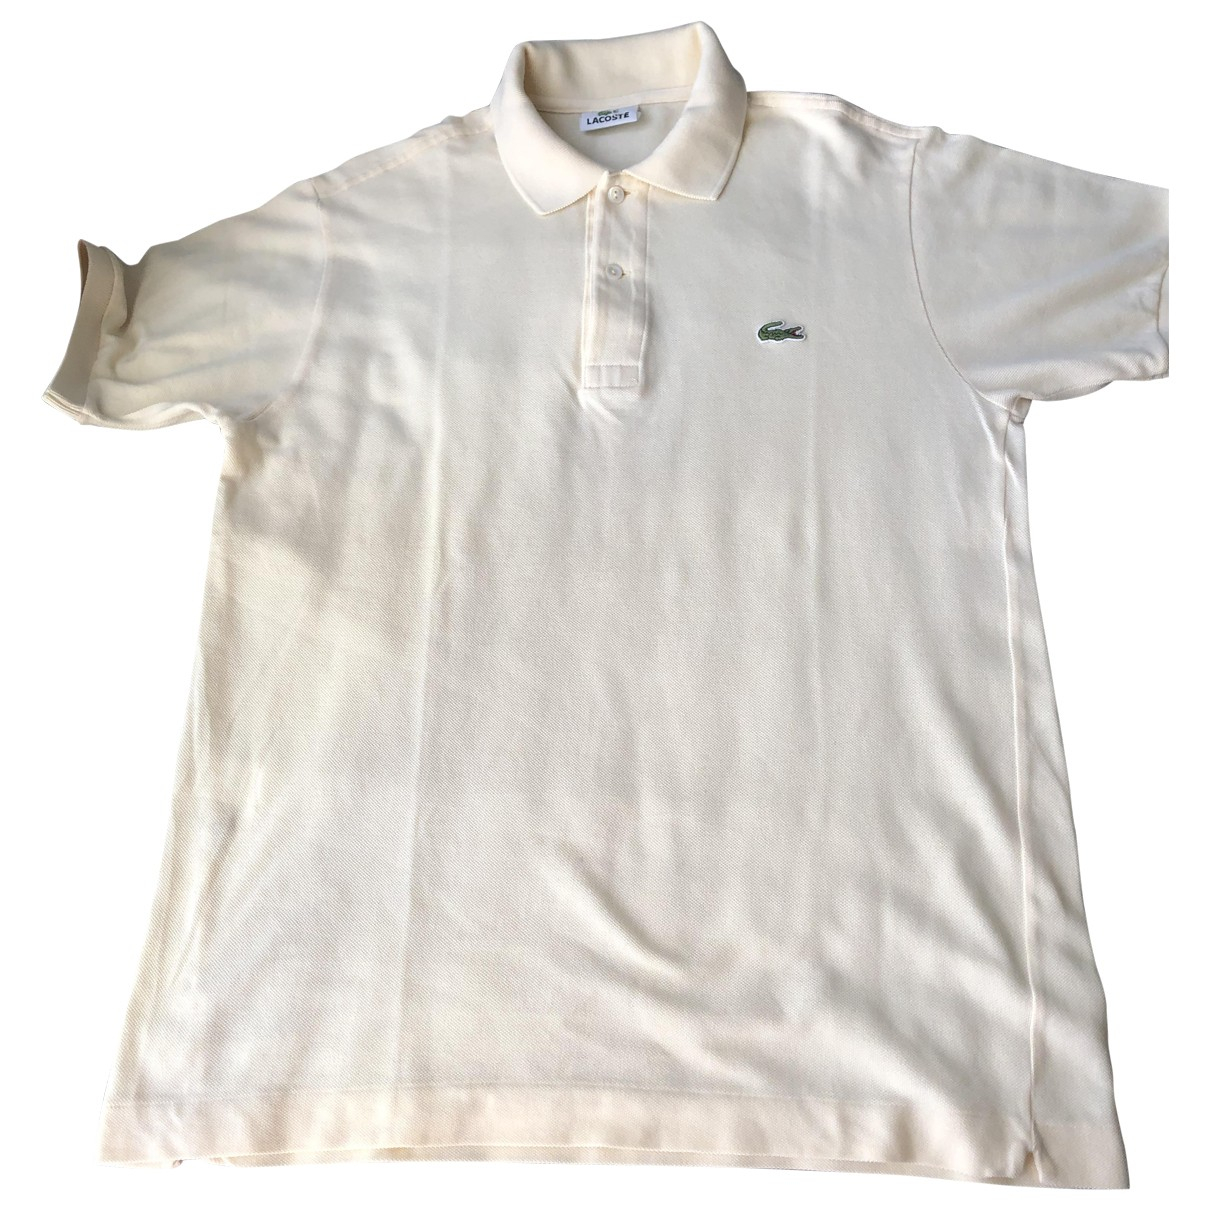 Lacoste \N Beige Cotton Polo shirts for Men L International